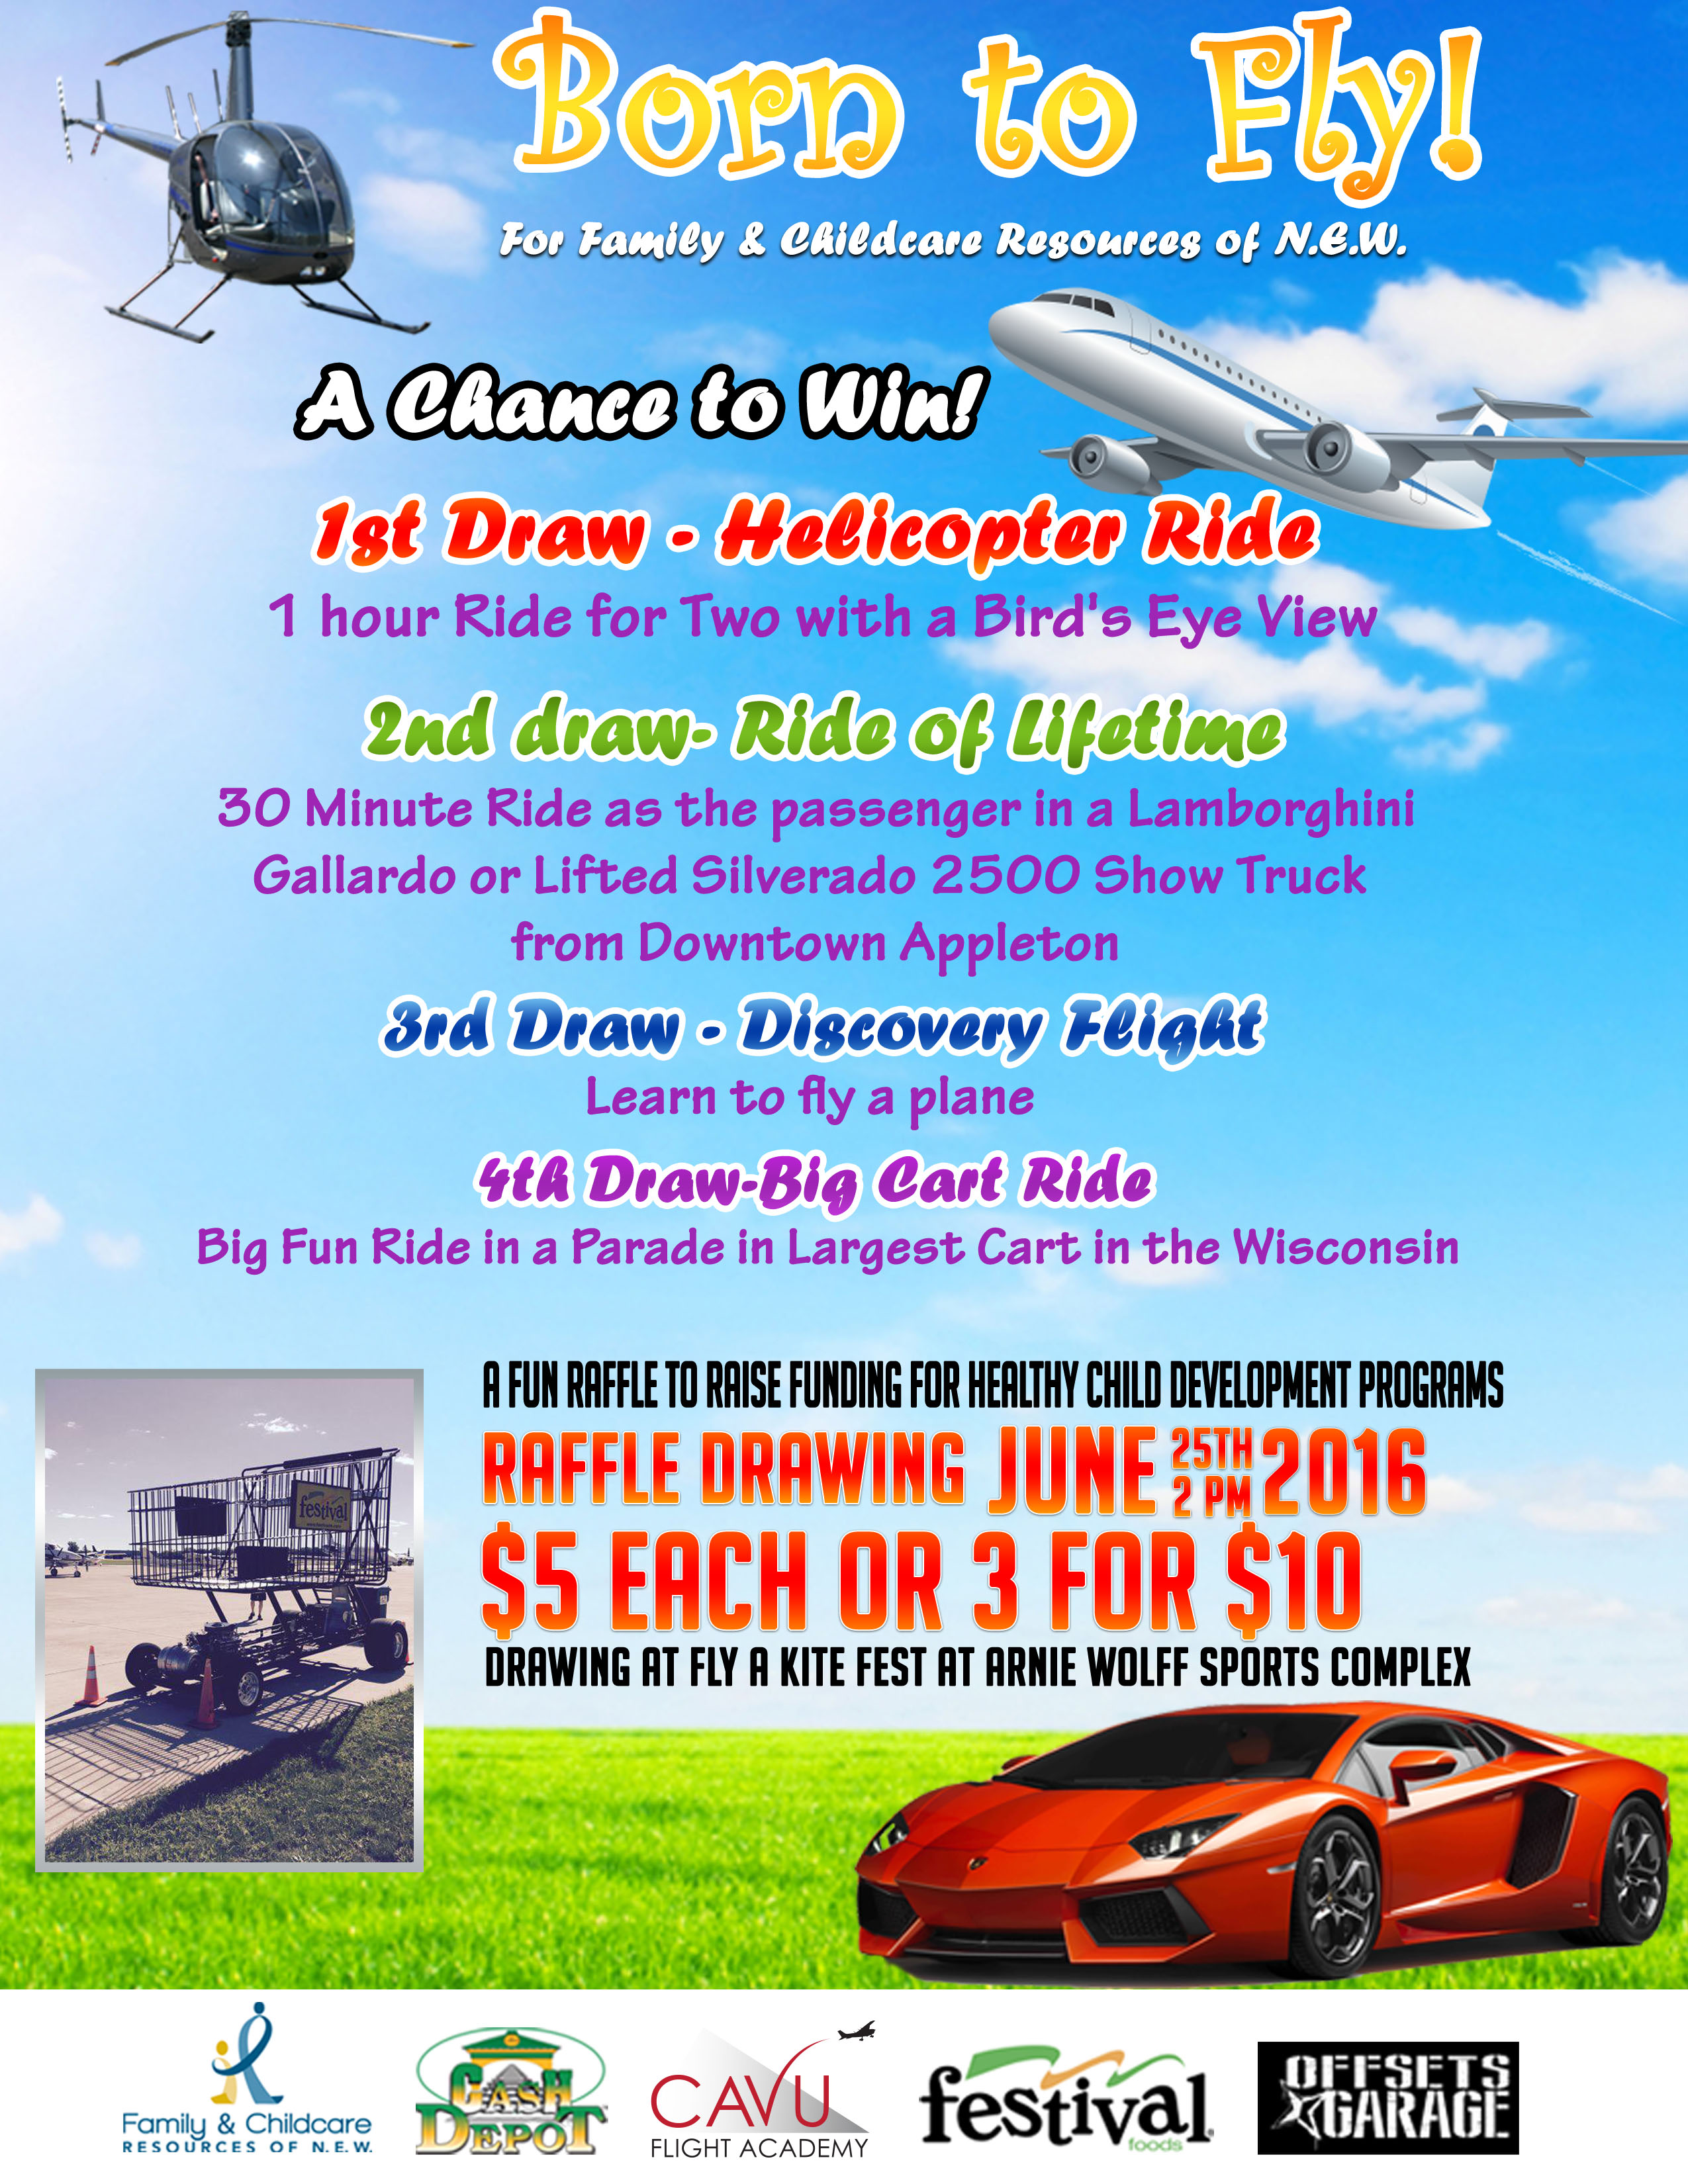 Born to Fly Raffle Tickets | Family & Childcare Resources of